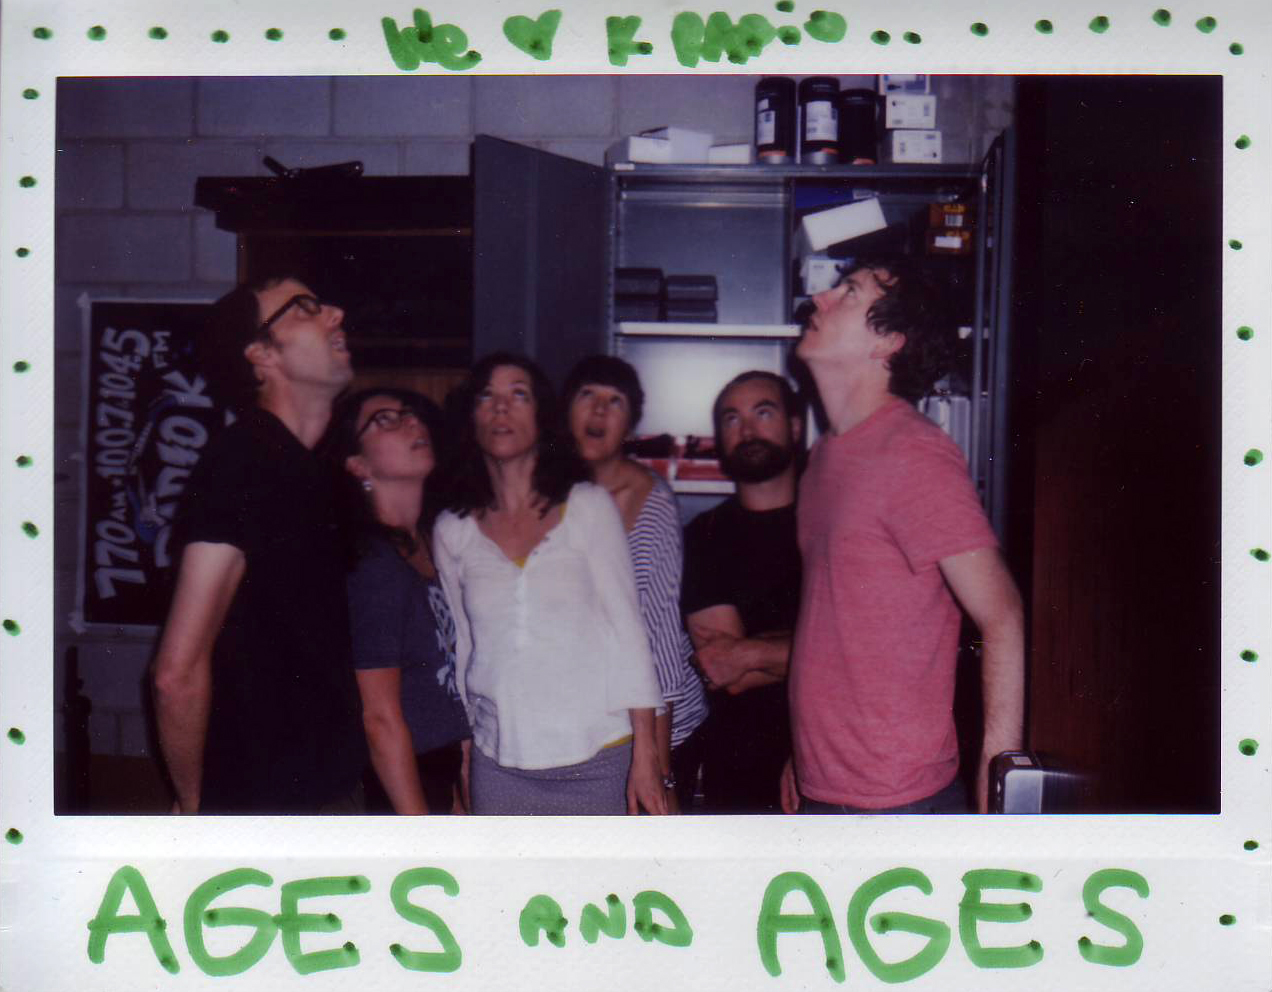 Ages and Ages